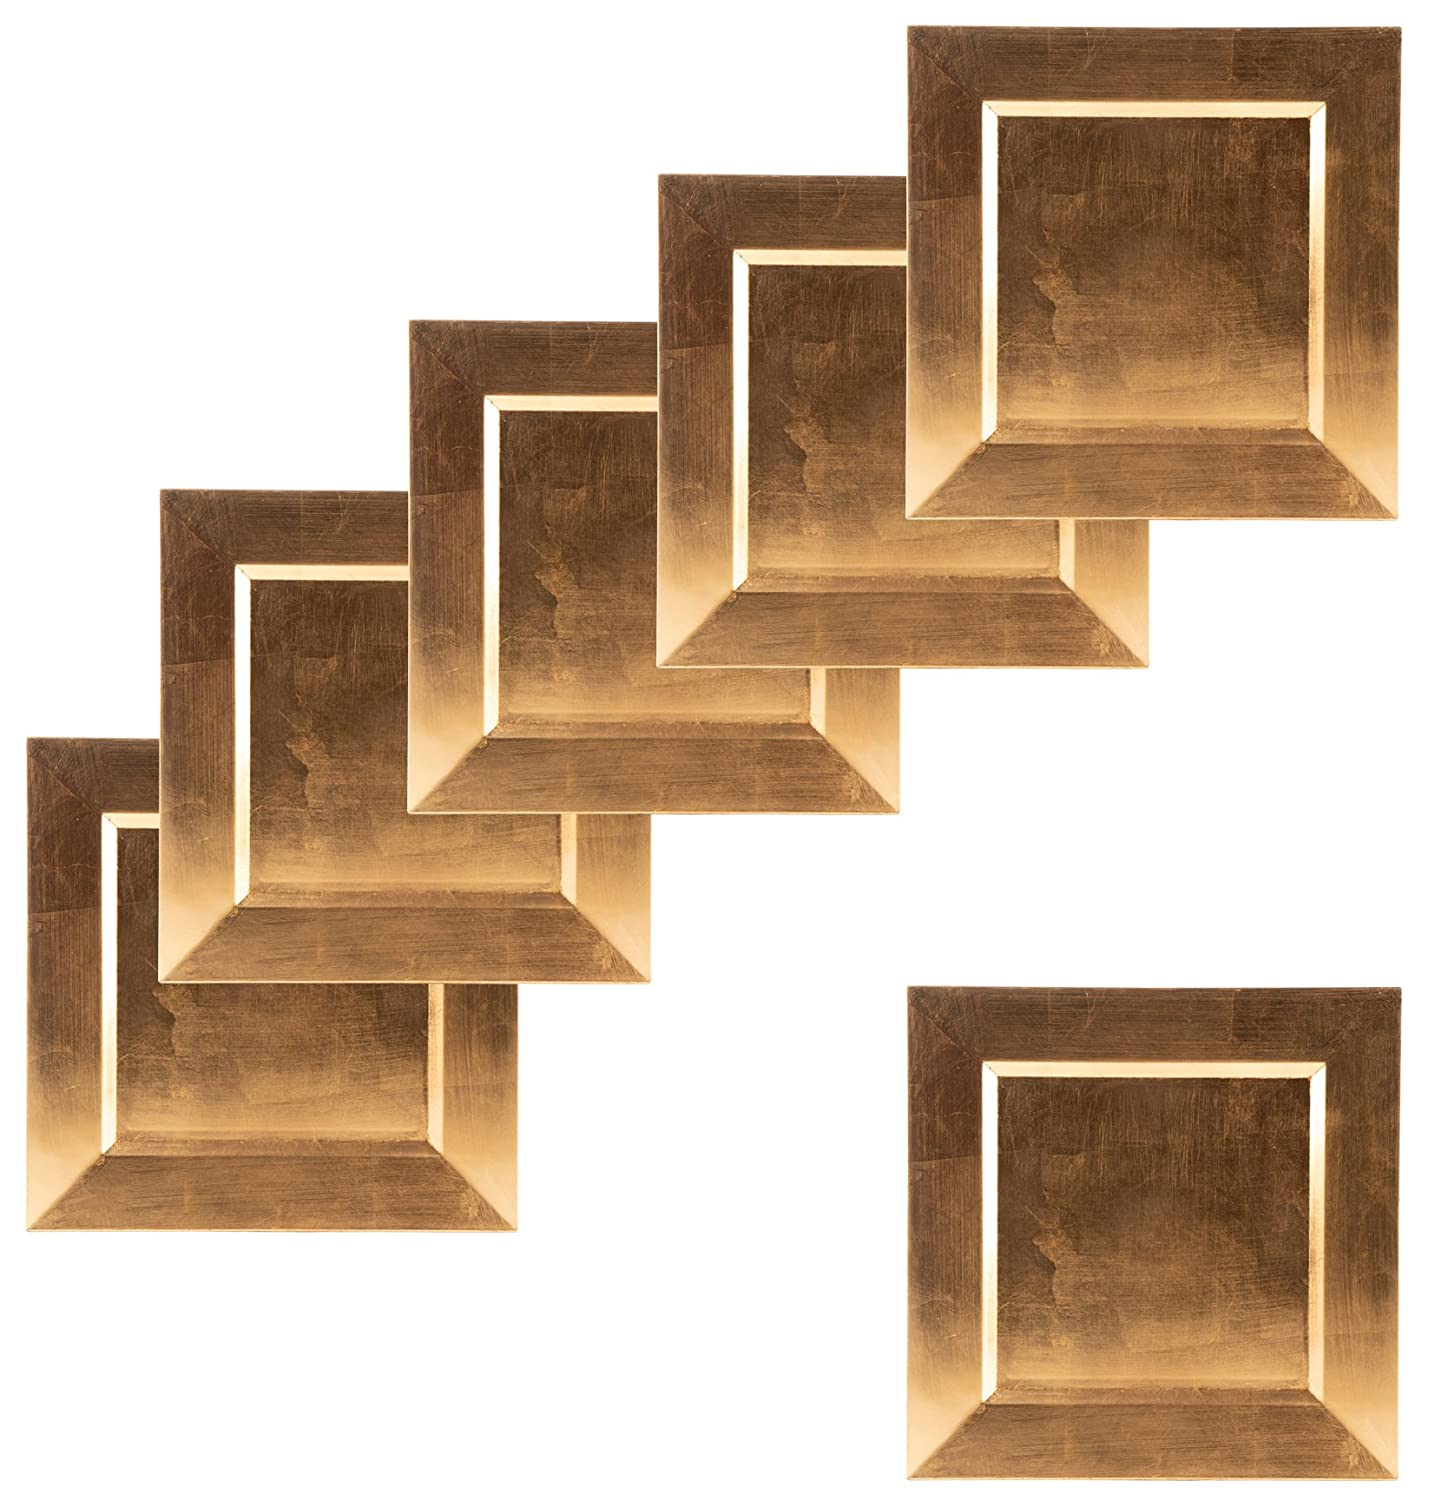 Square Charger Plates - 6-Pack 13-Inch Gold Charger Plates with Electroplated Finish, For Tabletop Decor on Special Events, Weddings, Banquets Juvale